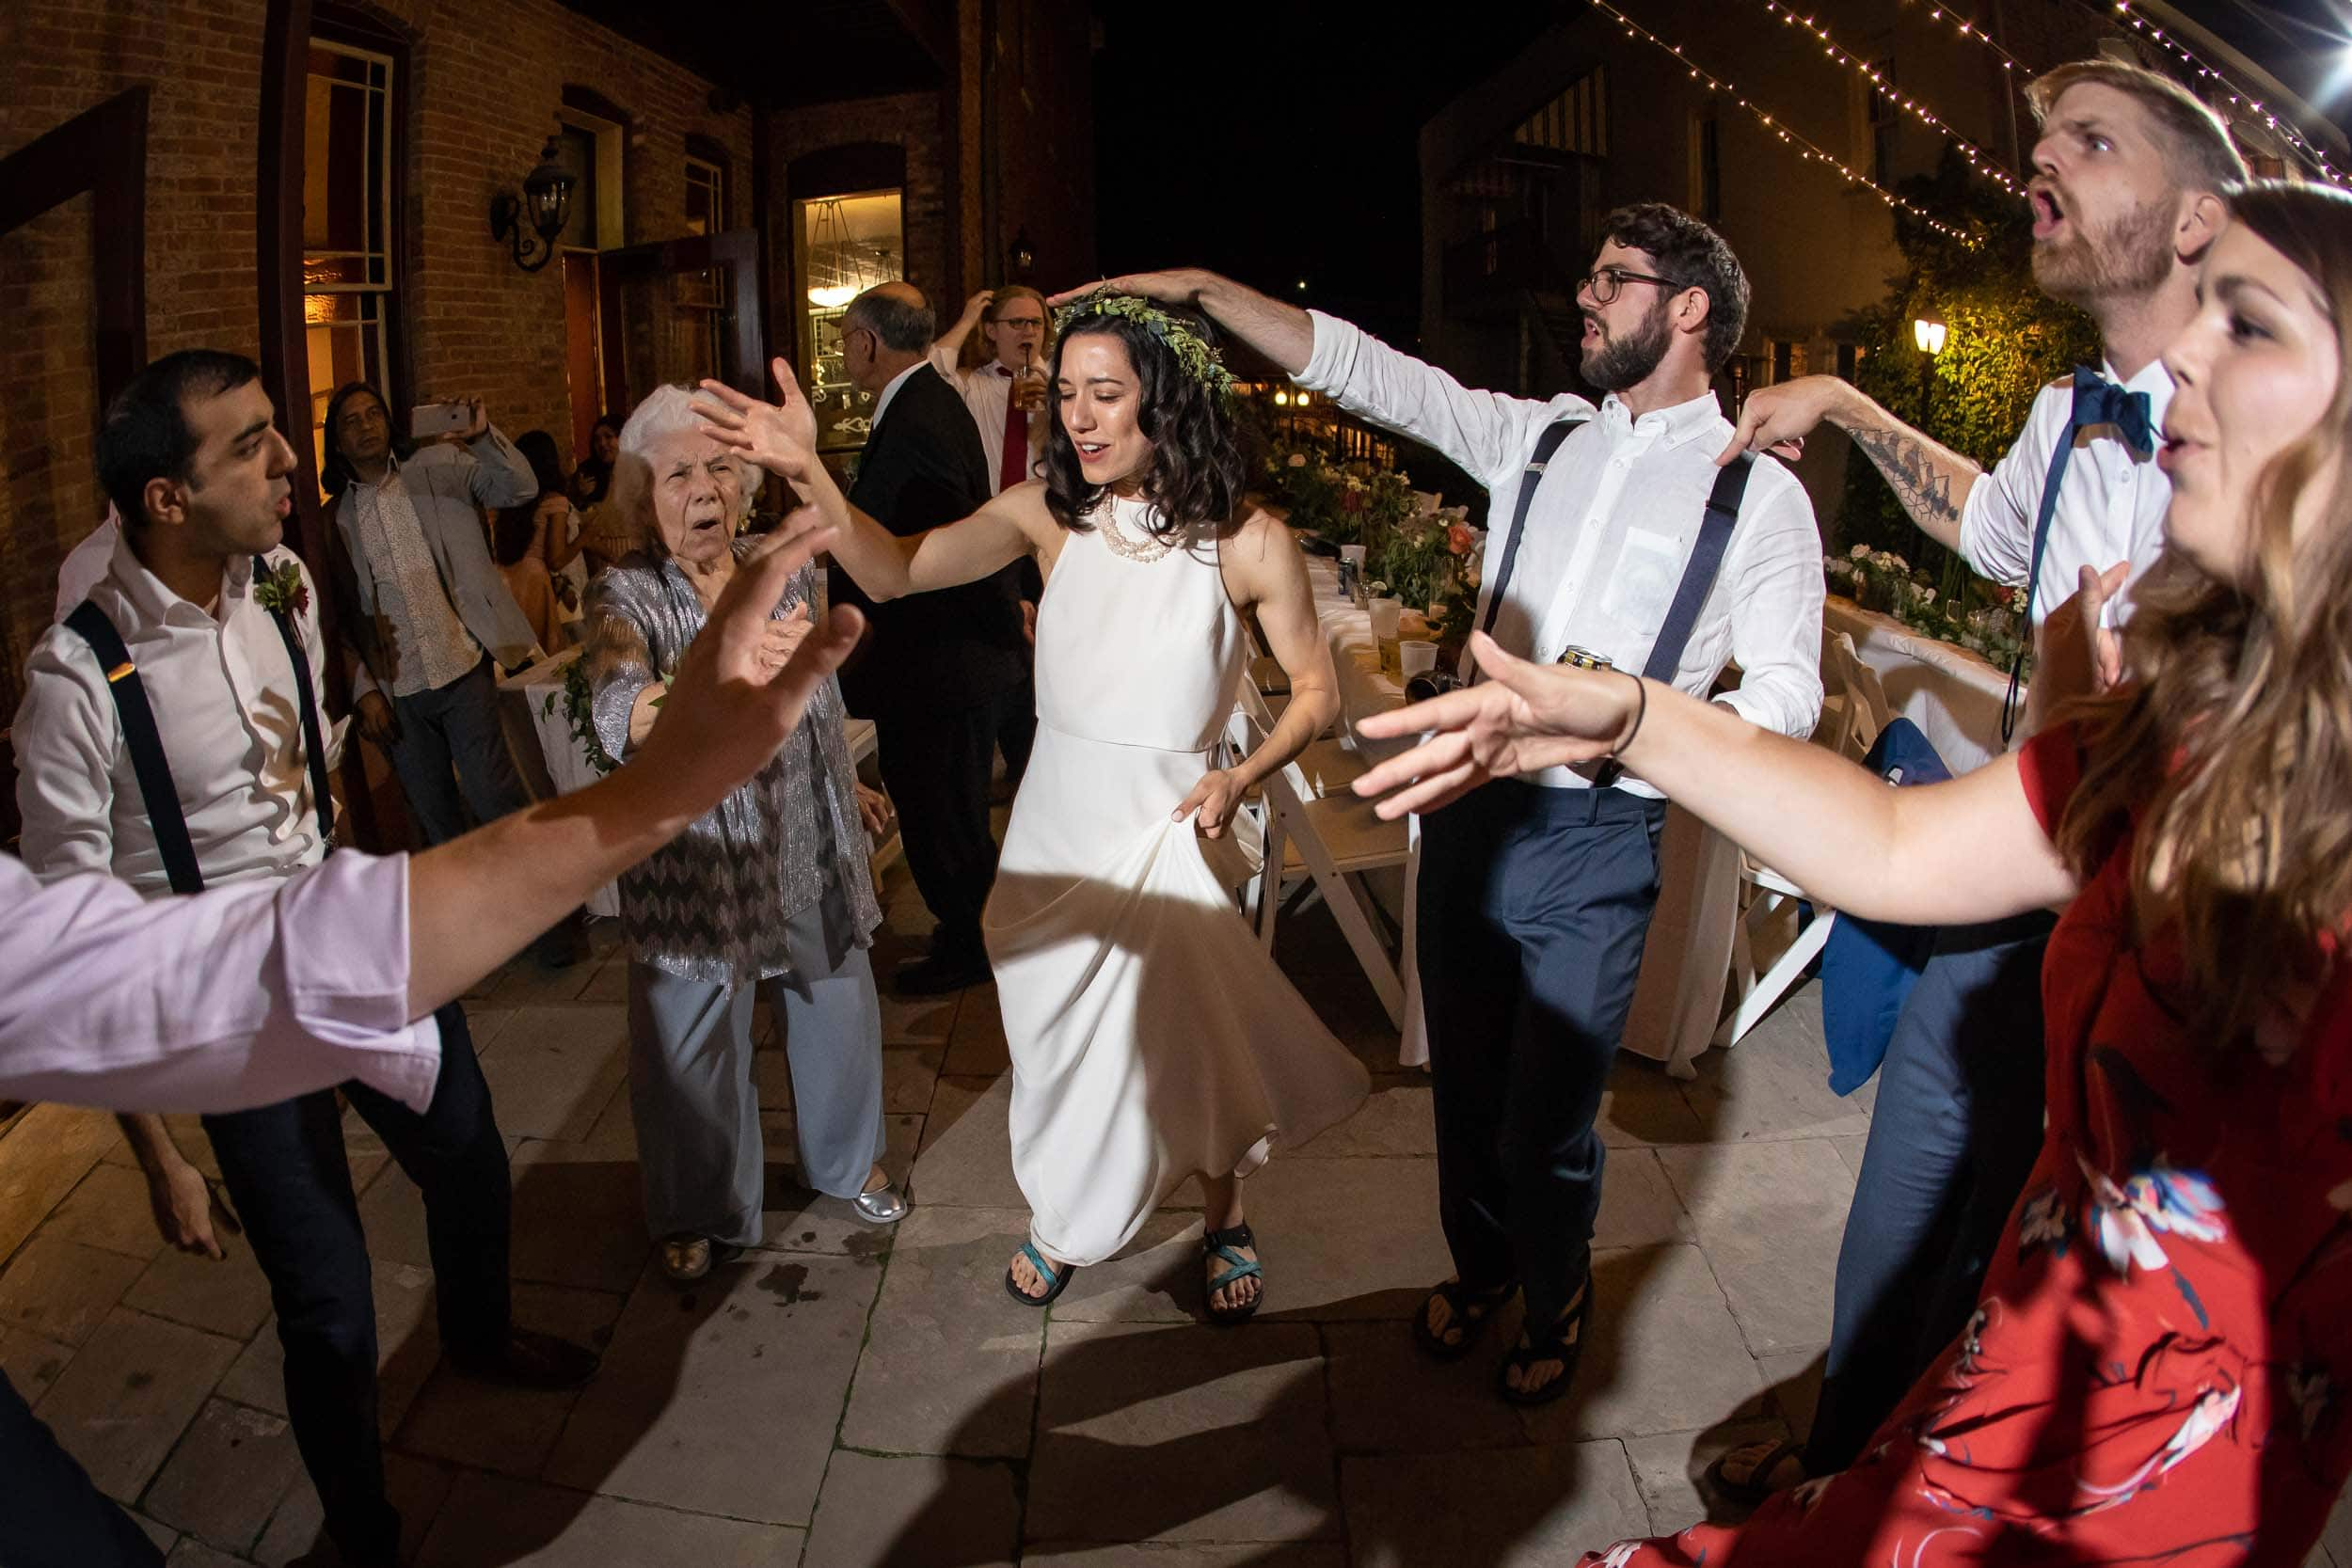 Guests dancing at a wedding reception at the Beaumont Hotel in Ouray, CO